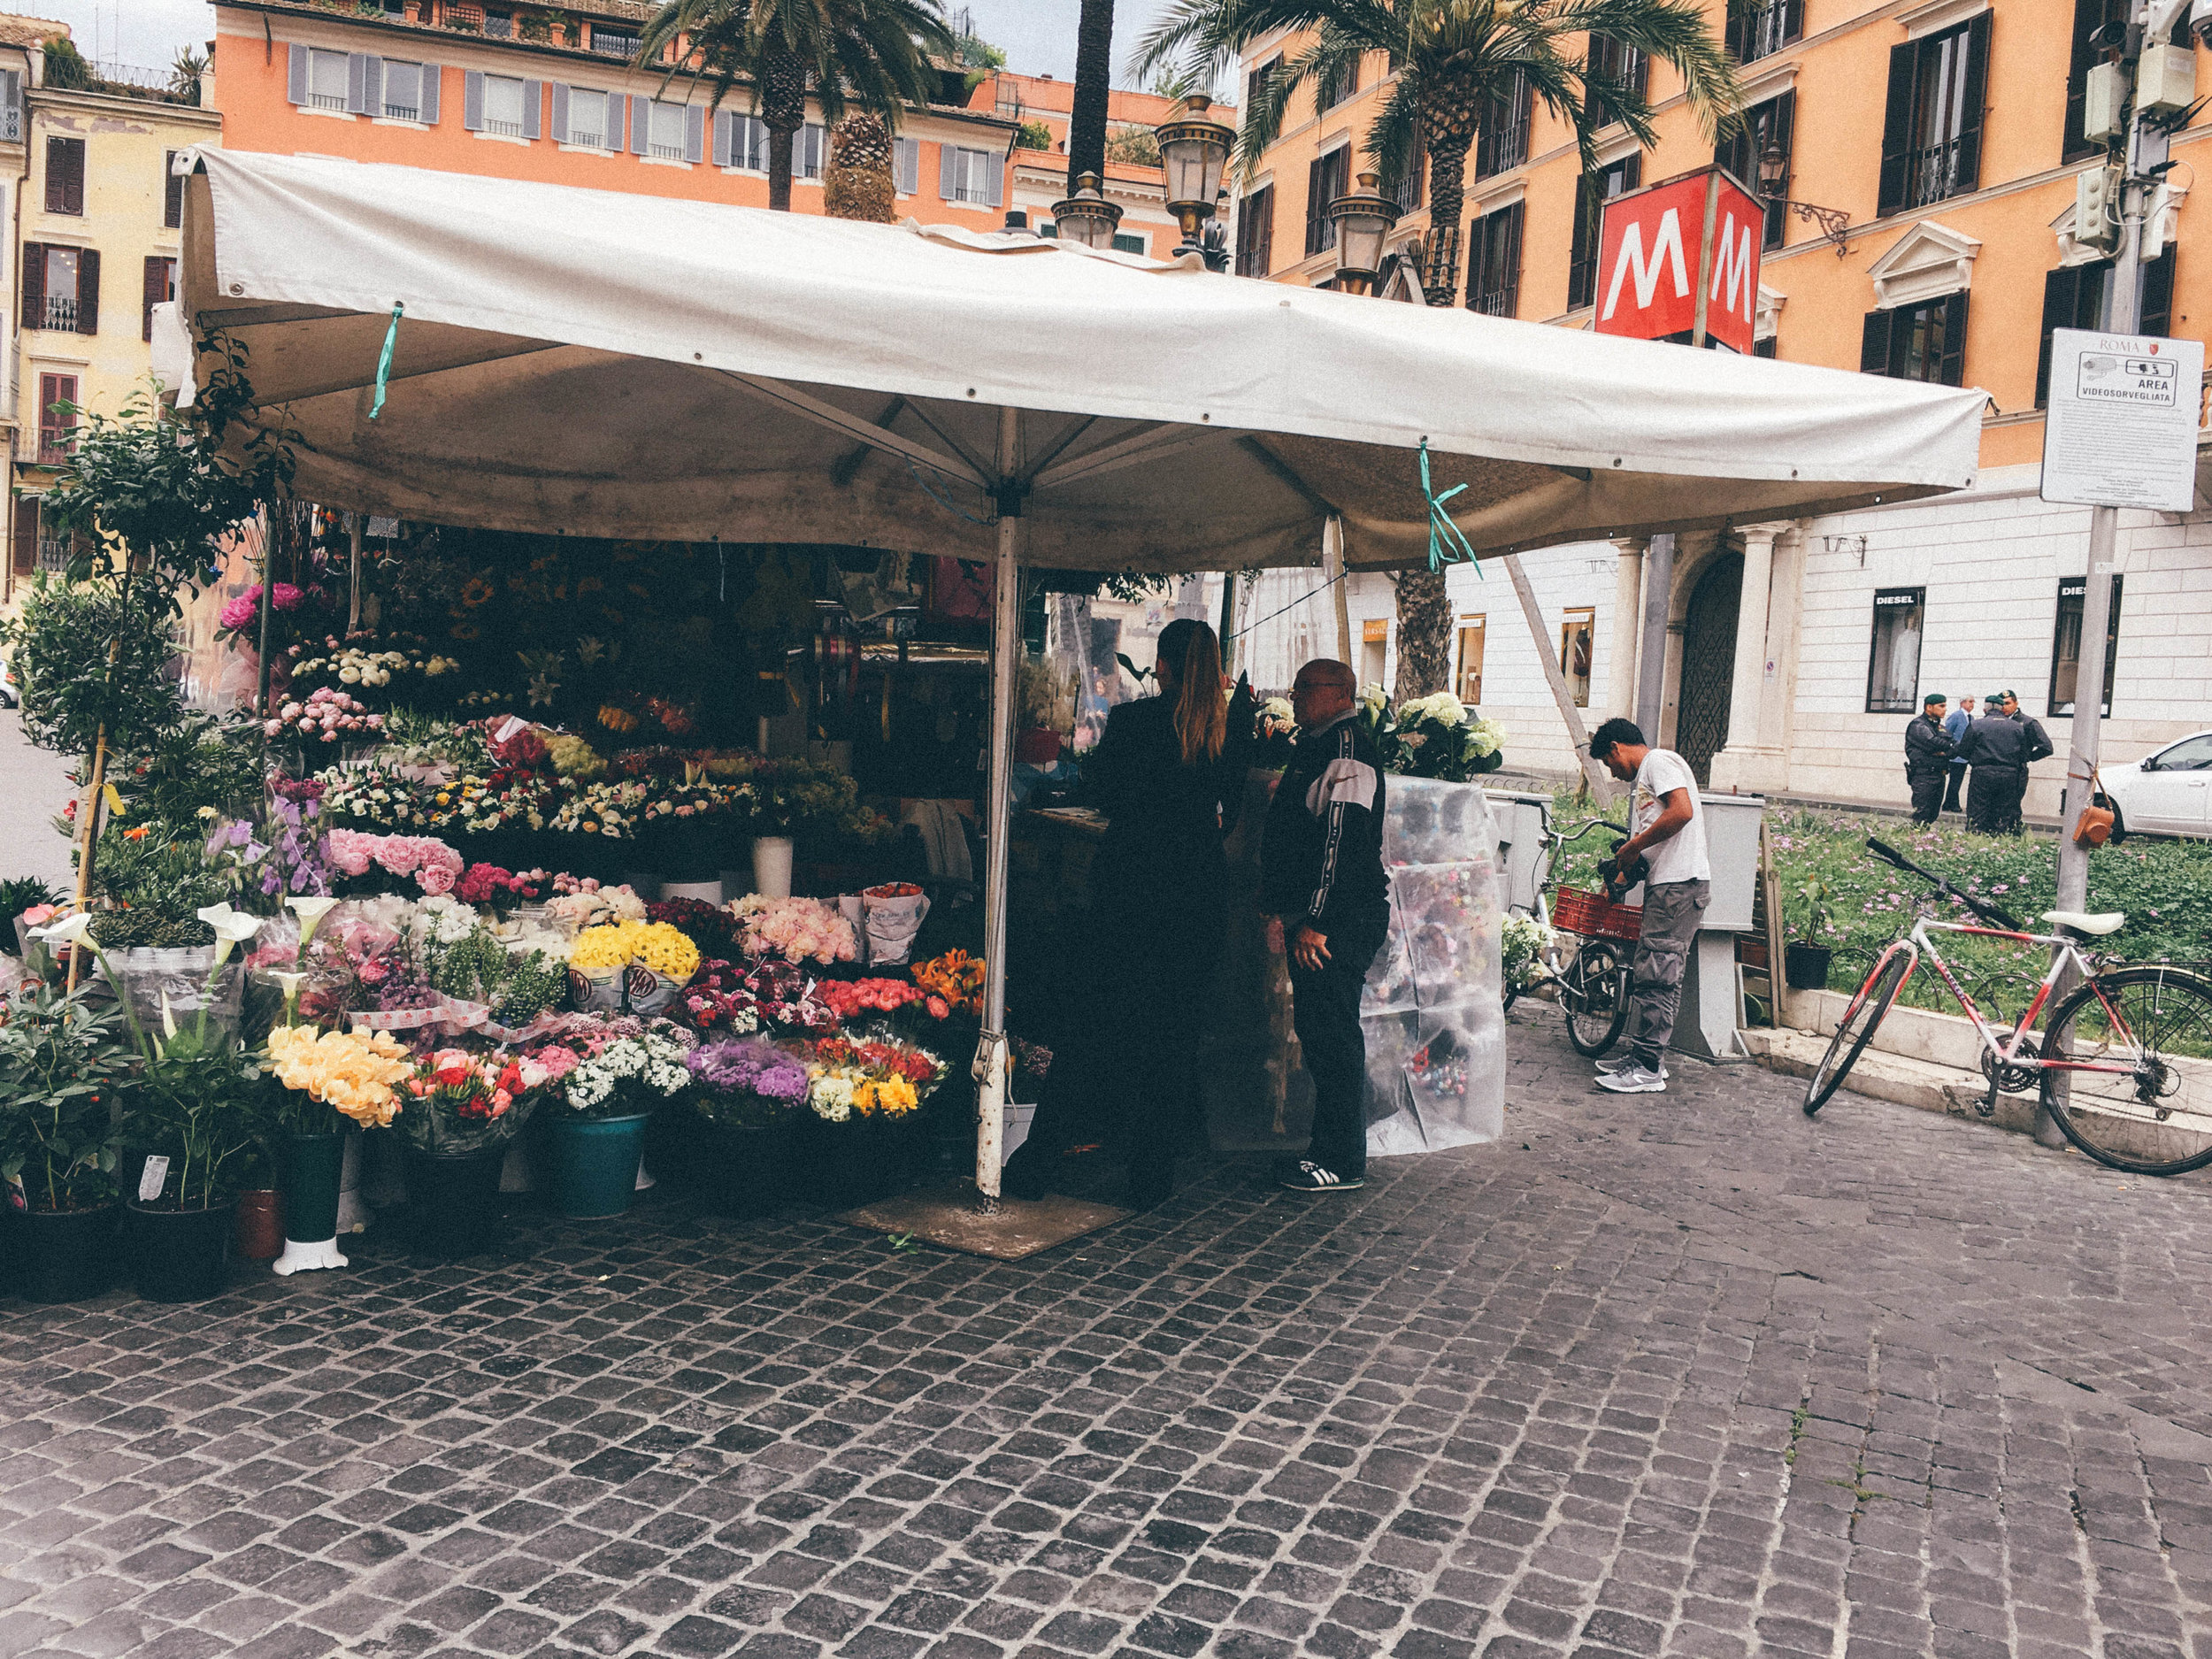 A flower market near the spanish steps